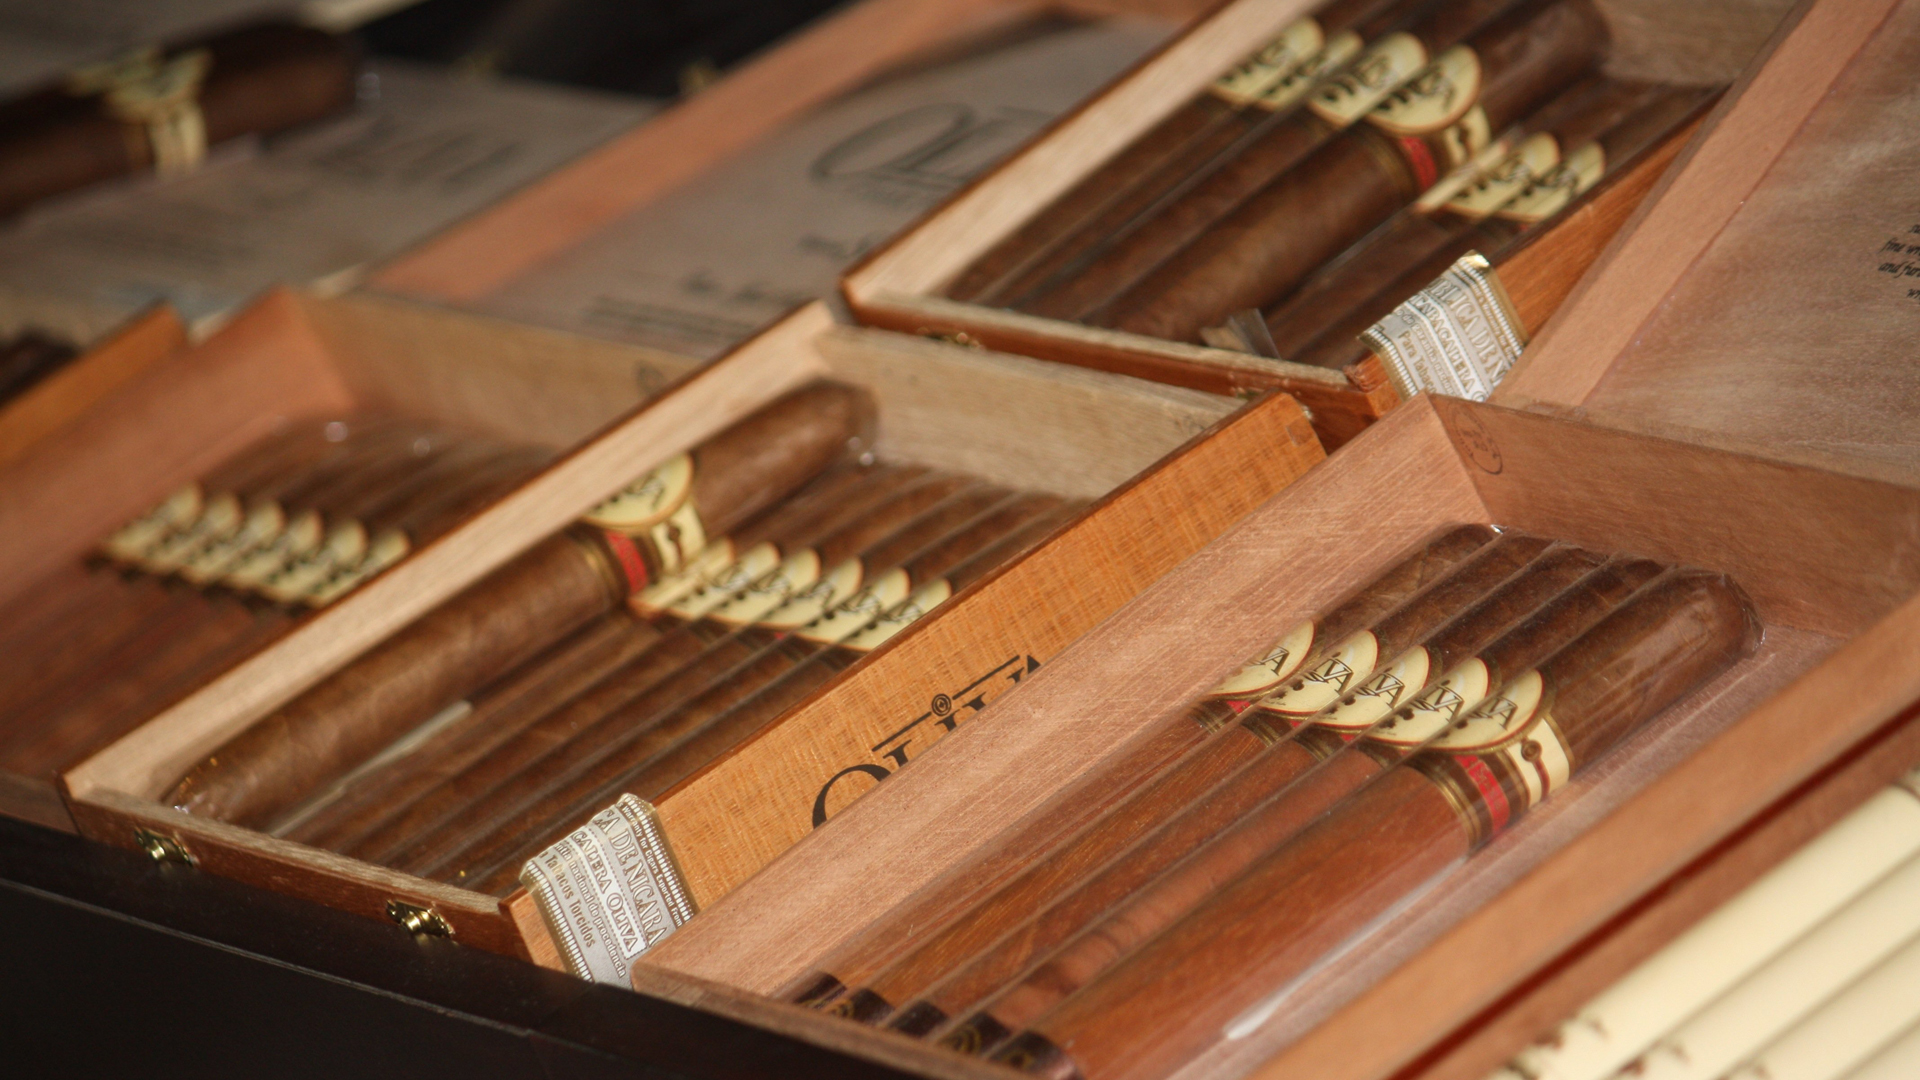 A file photo of flavored cigars. (Credit: John Couwels/CNN)